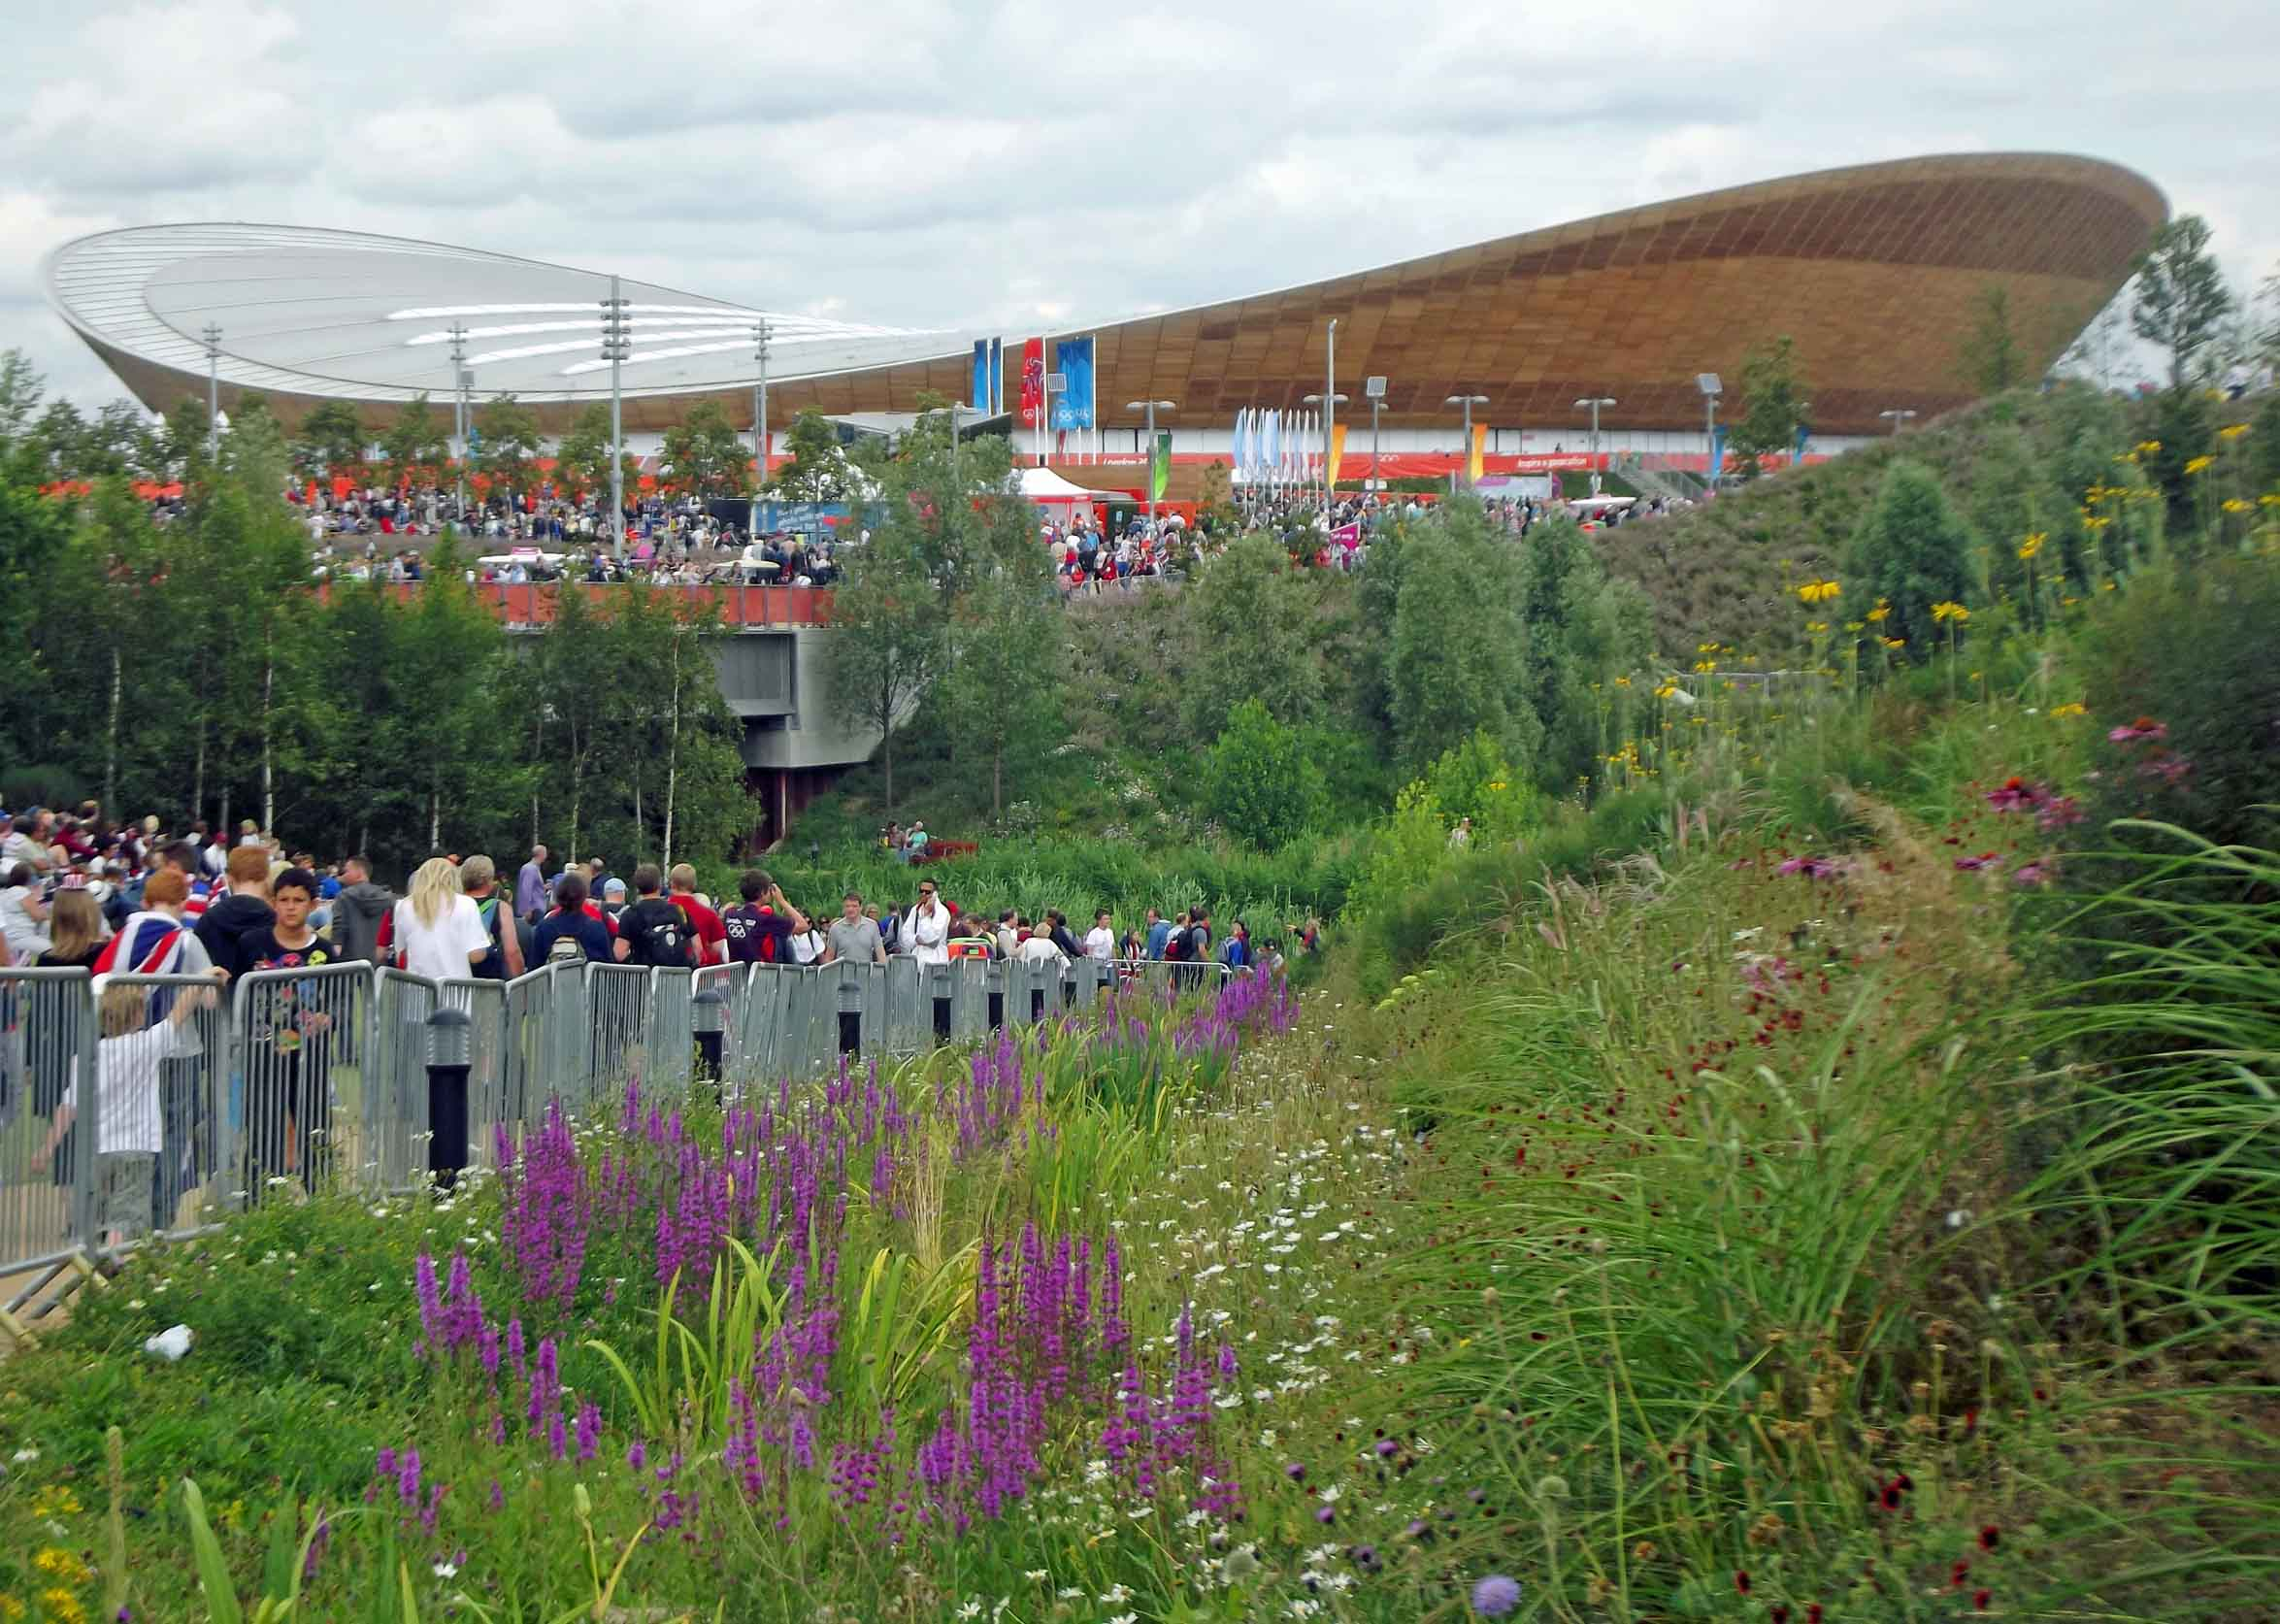 Sports stadium with crowds outside